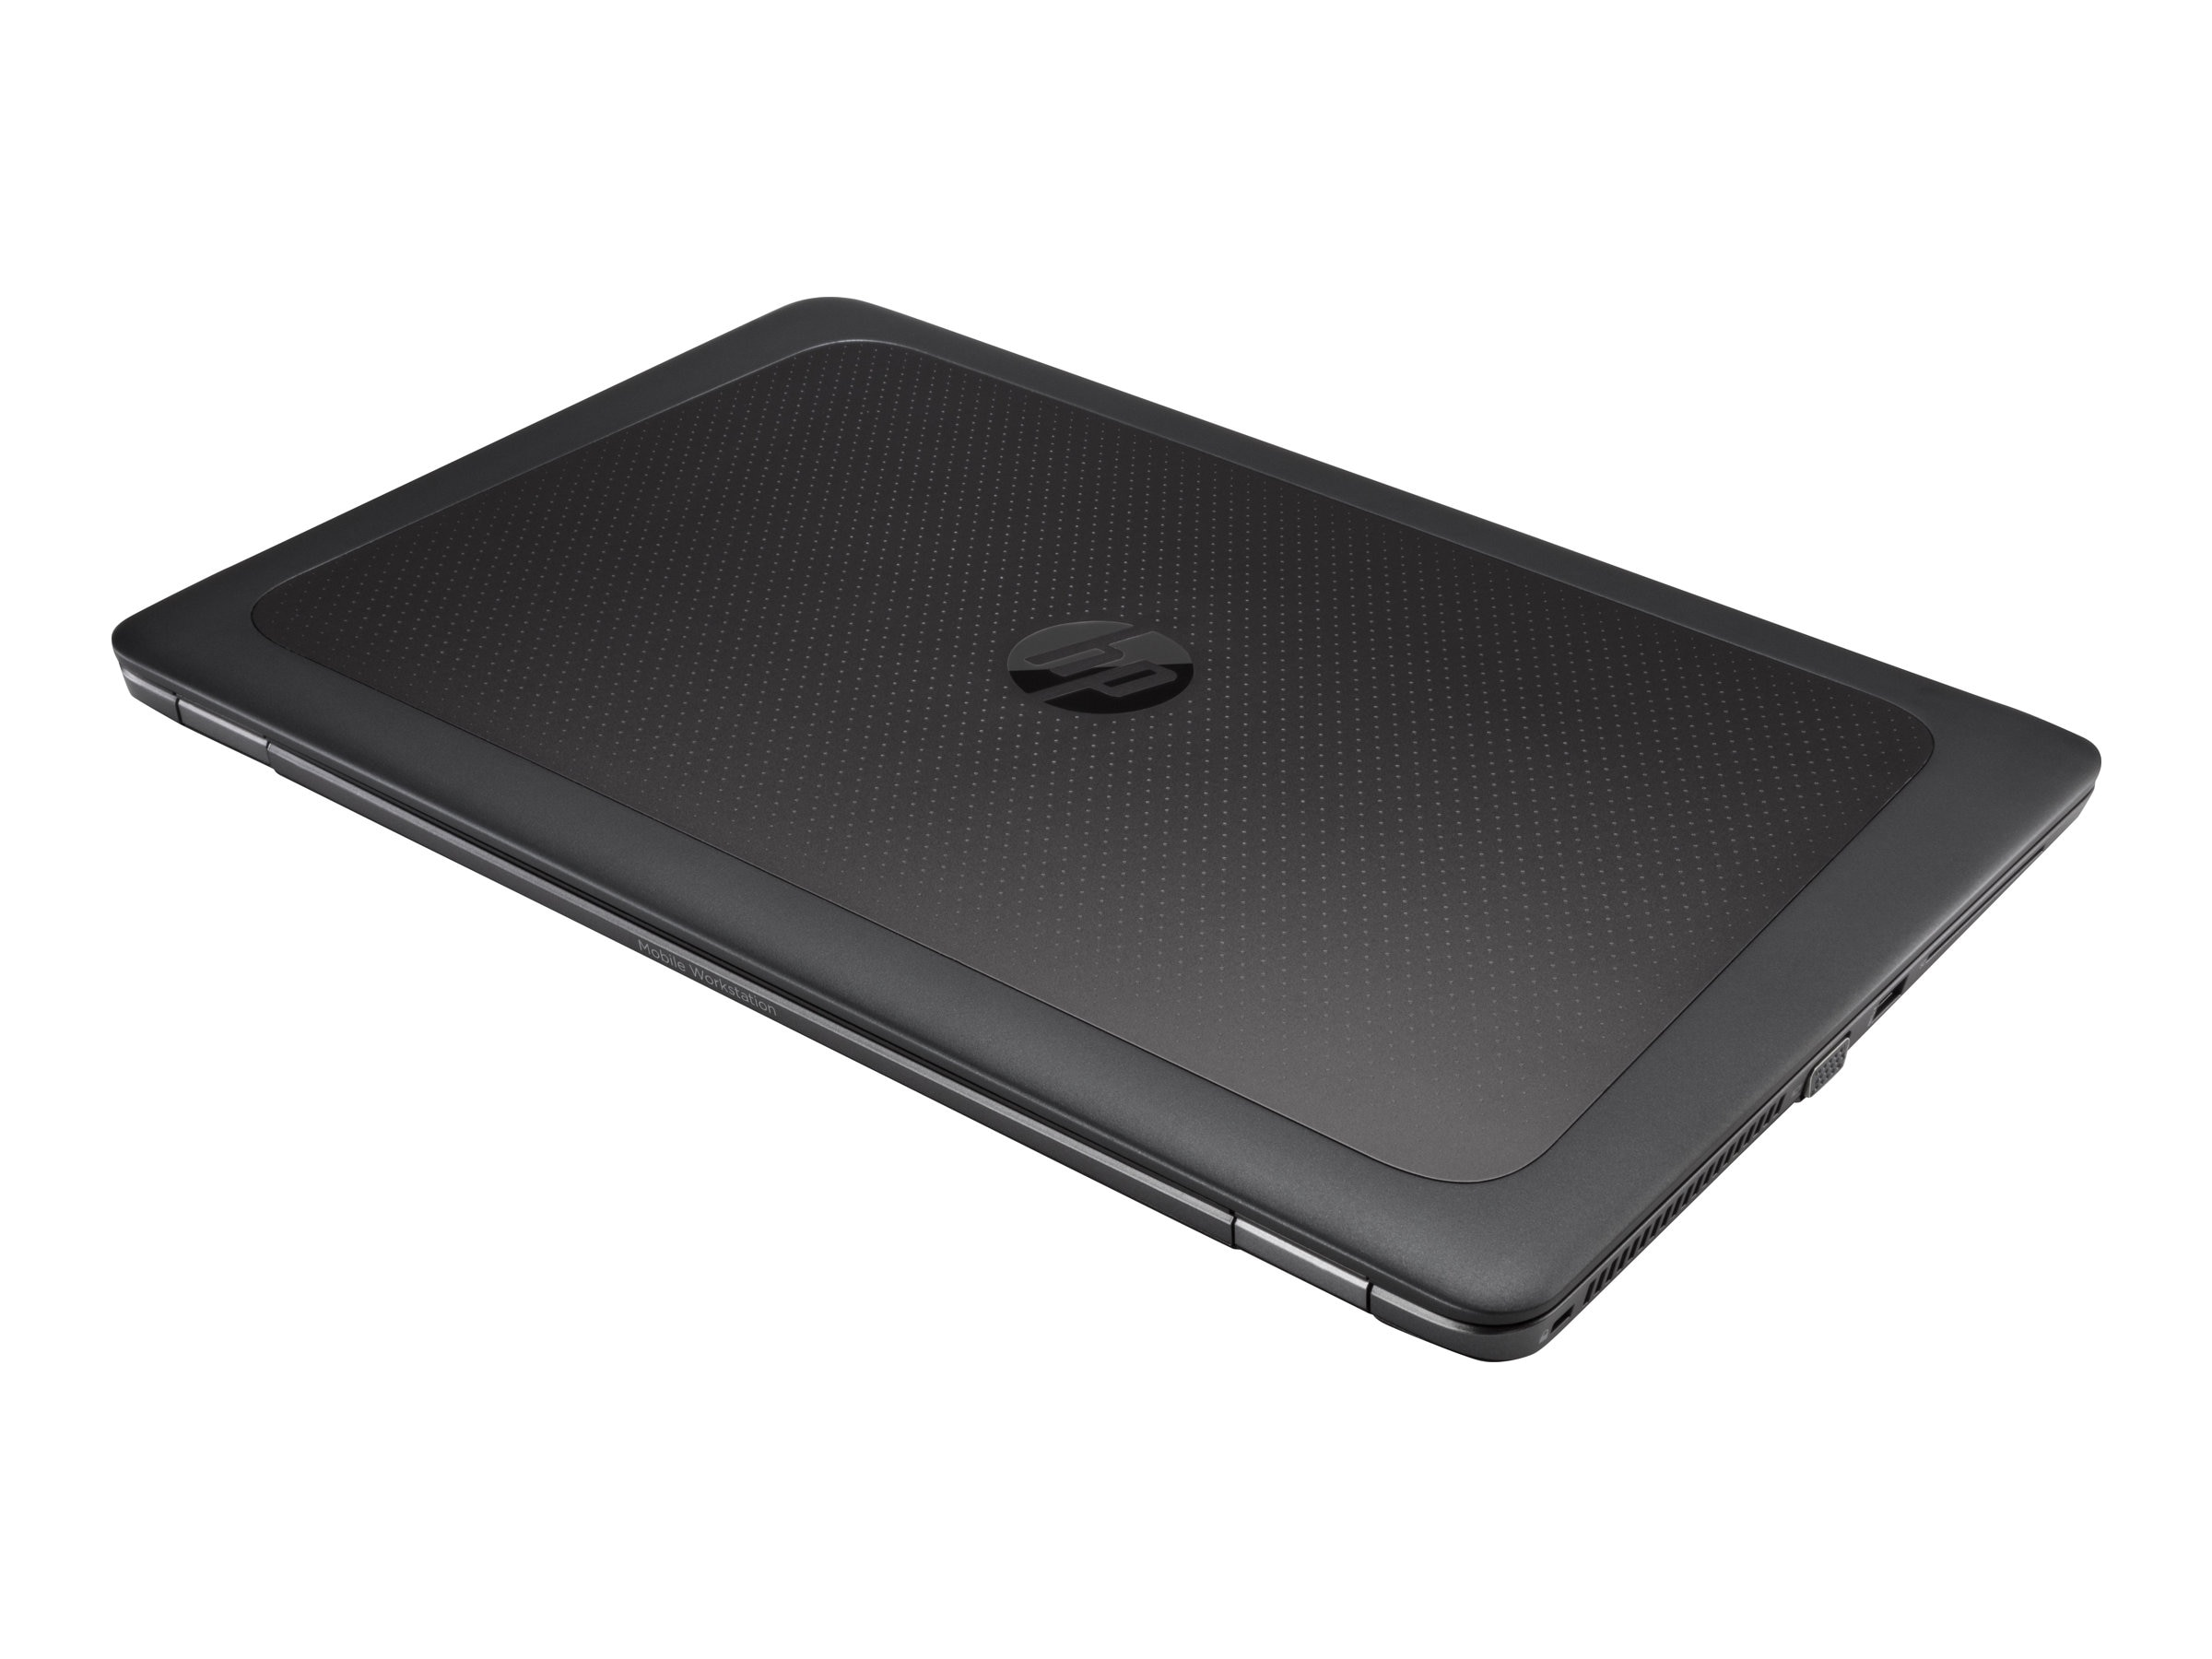 HP ZBook 15u G3 Core i7-6500U 2.5GHz 8GB 256GB SSD ac BT FR WC 3C W4190M 15.6 FHD MT W10P64